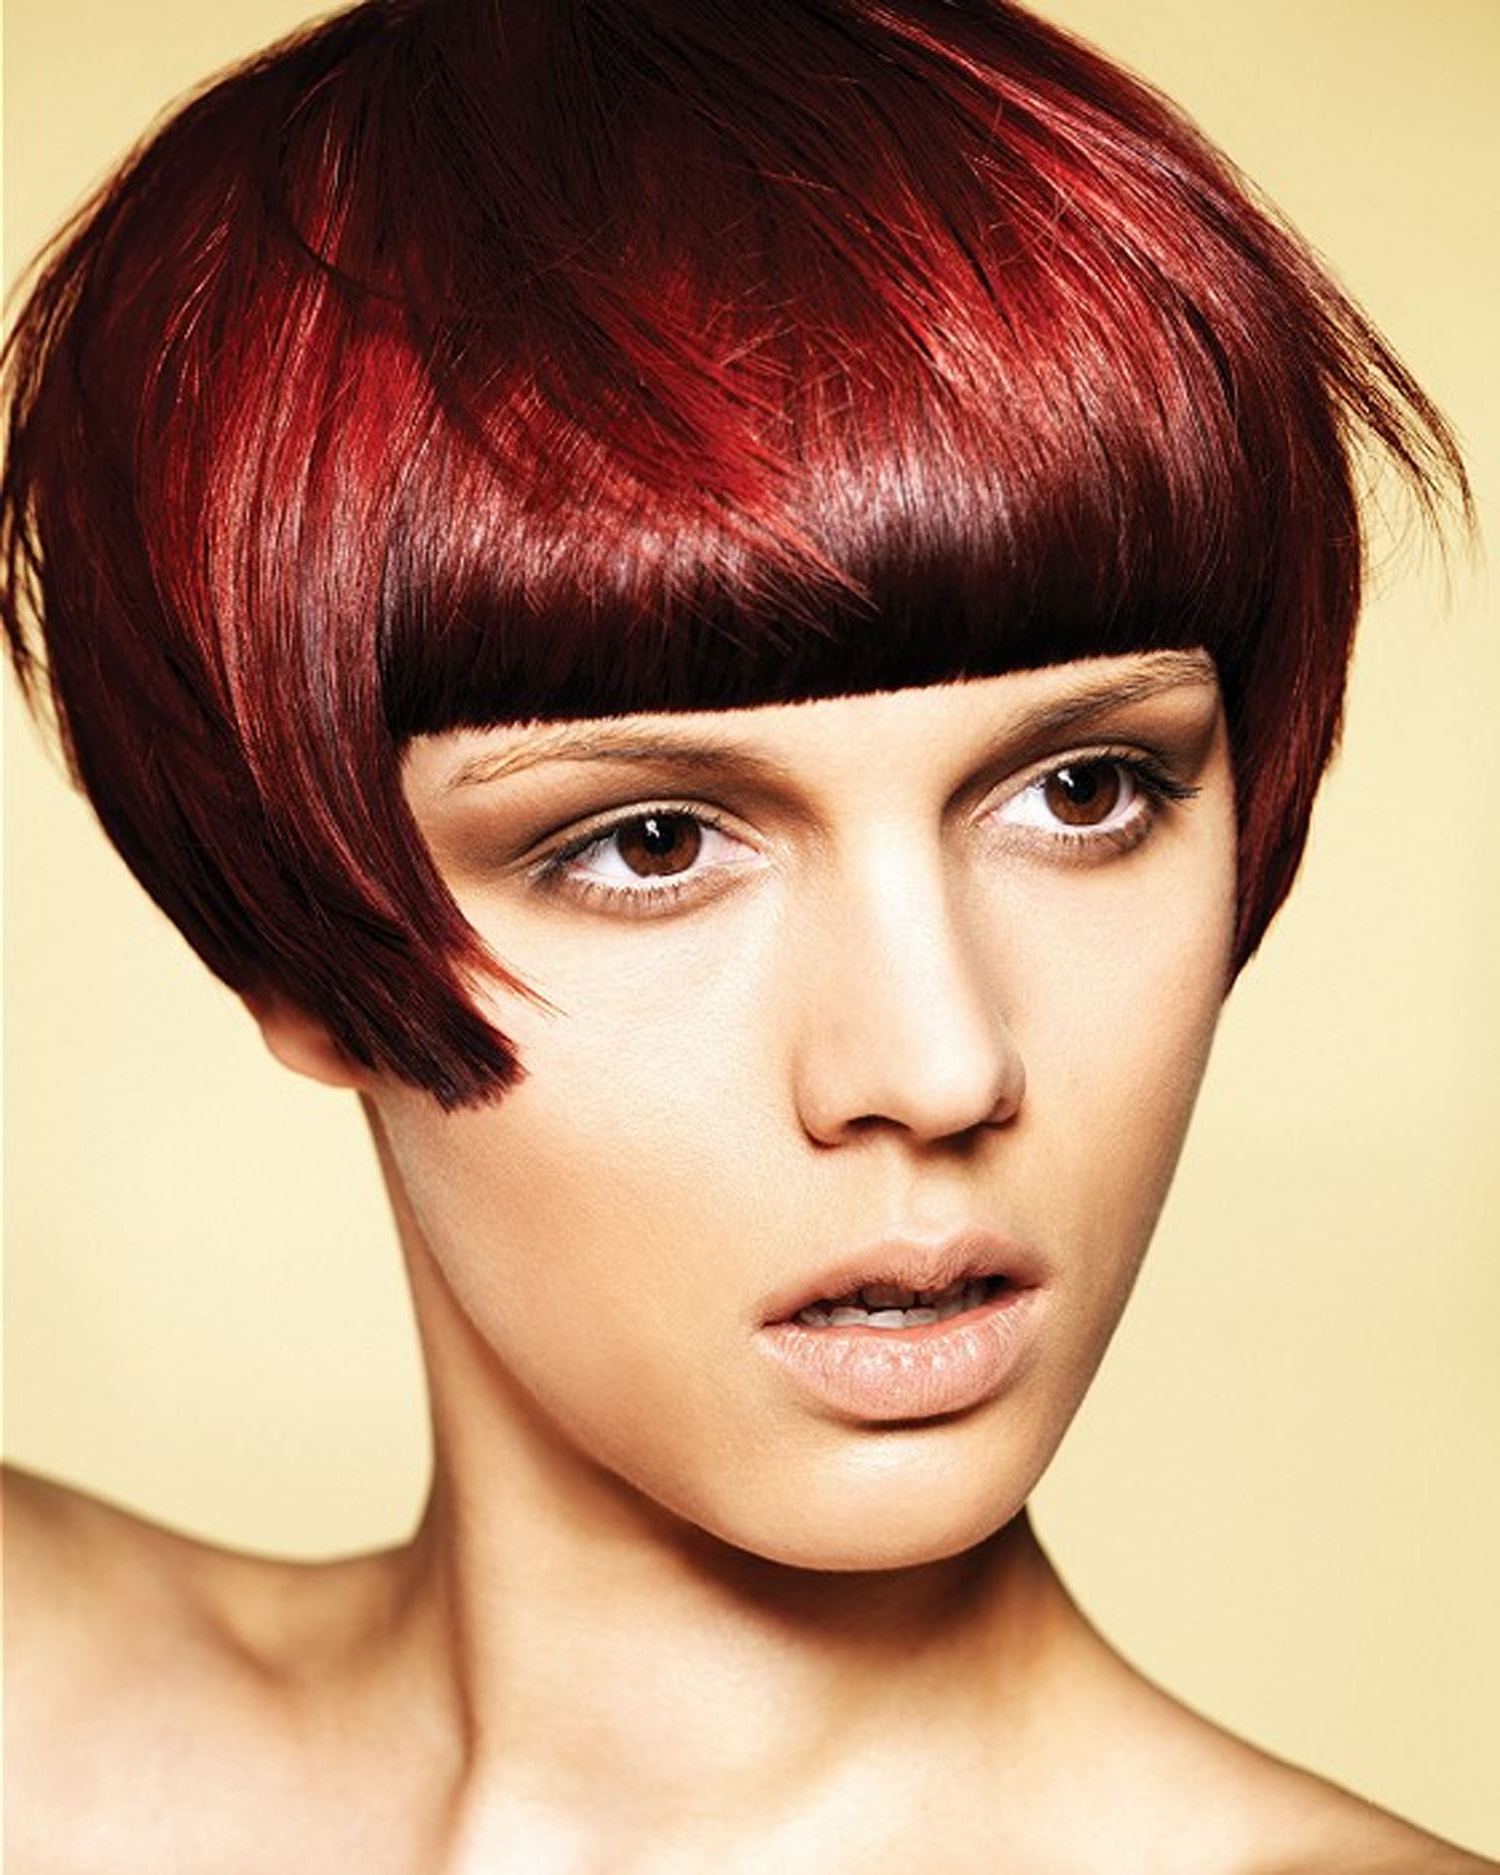 Short Hairstyles With Red Hair – Hairstyle For Women & Man Pertaining To Short Haircuts With Red Hair (View 12 of 25)